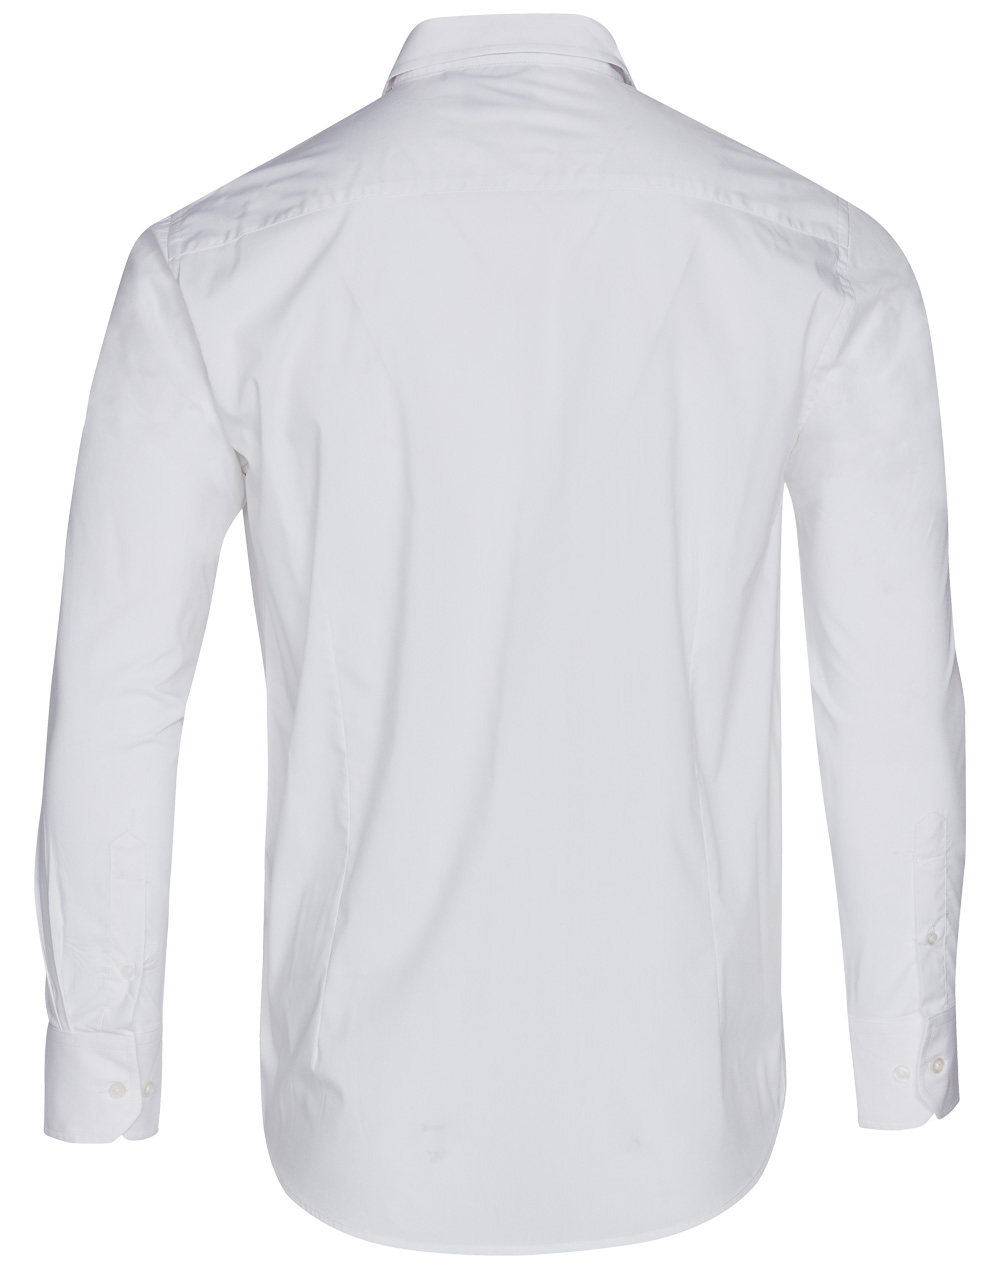 https://ws-imgs.s3-ap-southeast-1.amazonaws.com/BUSINESSSHIRTS/BS08L_White_Back.jpg